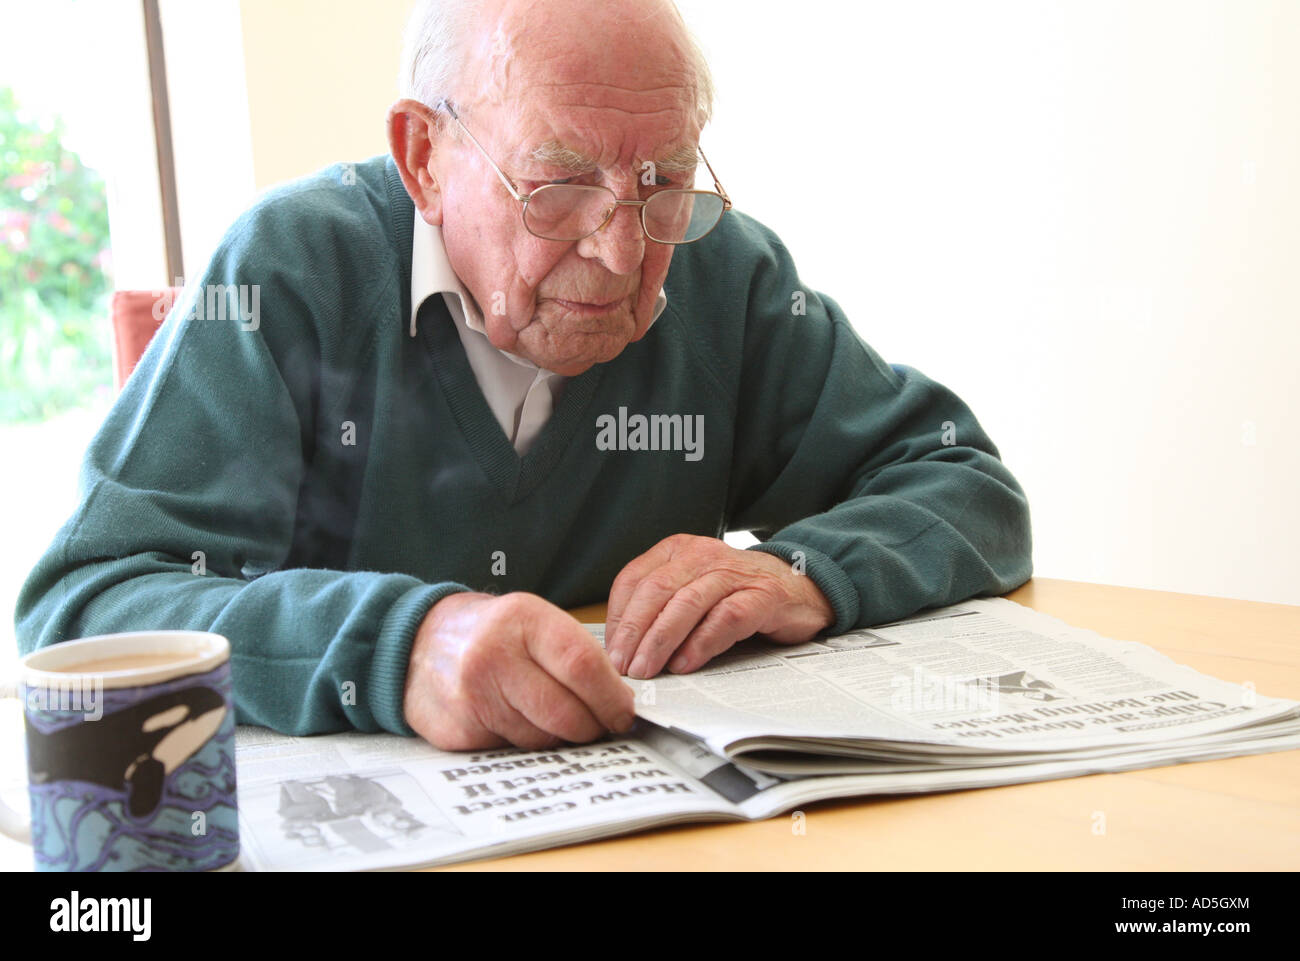 Old Man Reading Newspaper Stock Photo Royalty Free Image